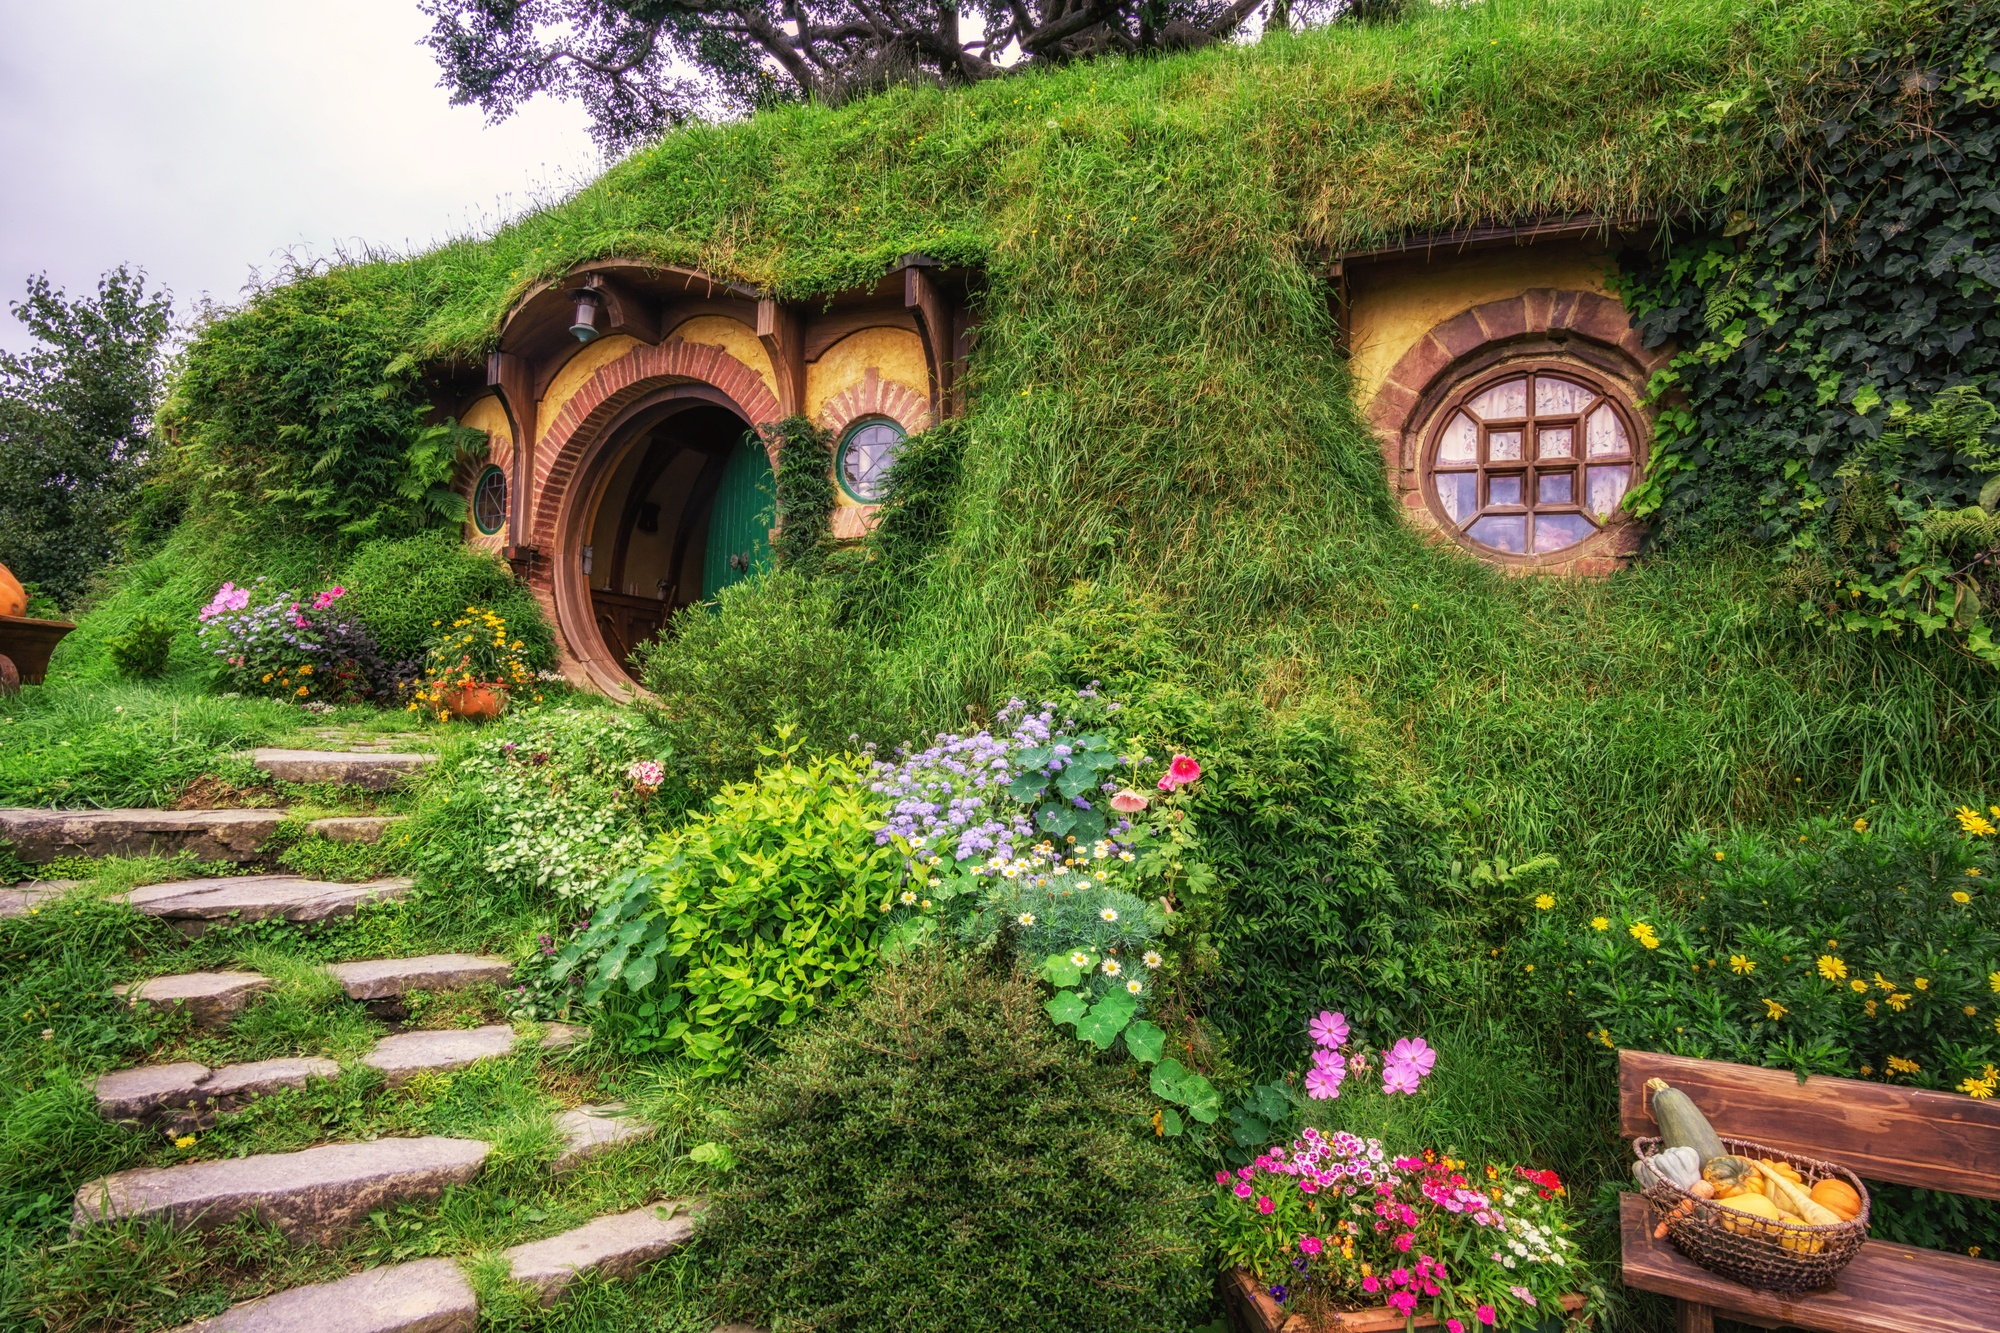 awesome movie locations, Hobbiton, the Shire, The Lord of the Rings, Matamata, New Zealand